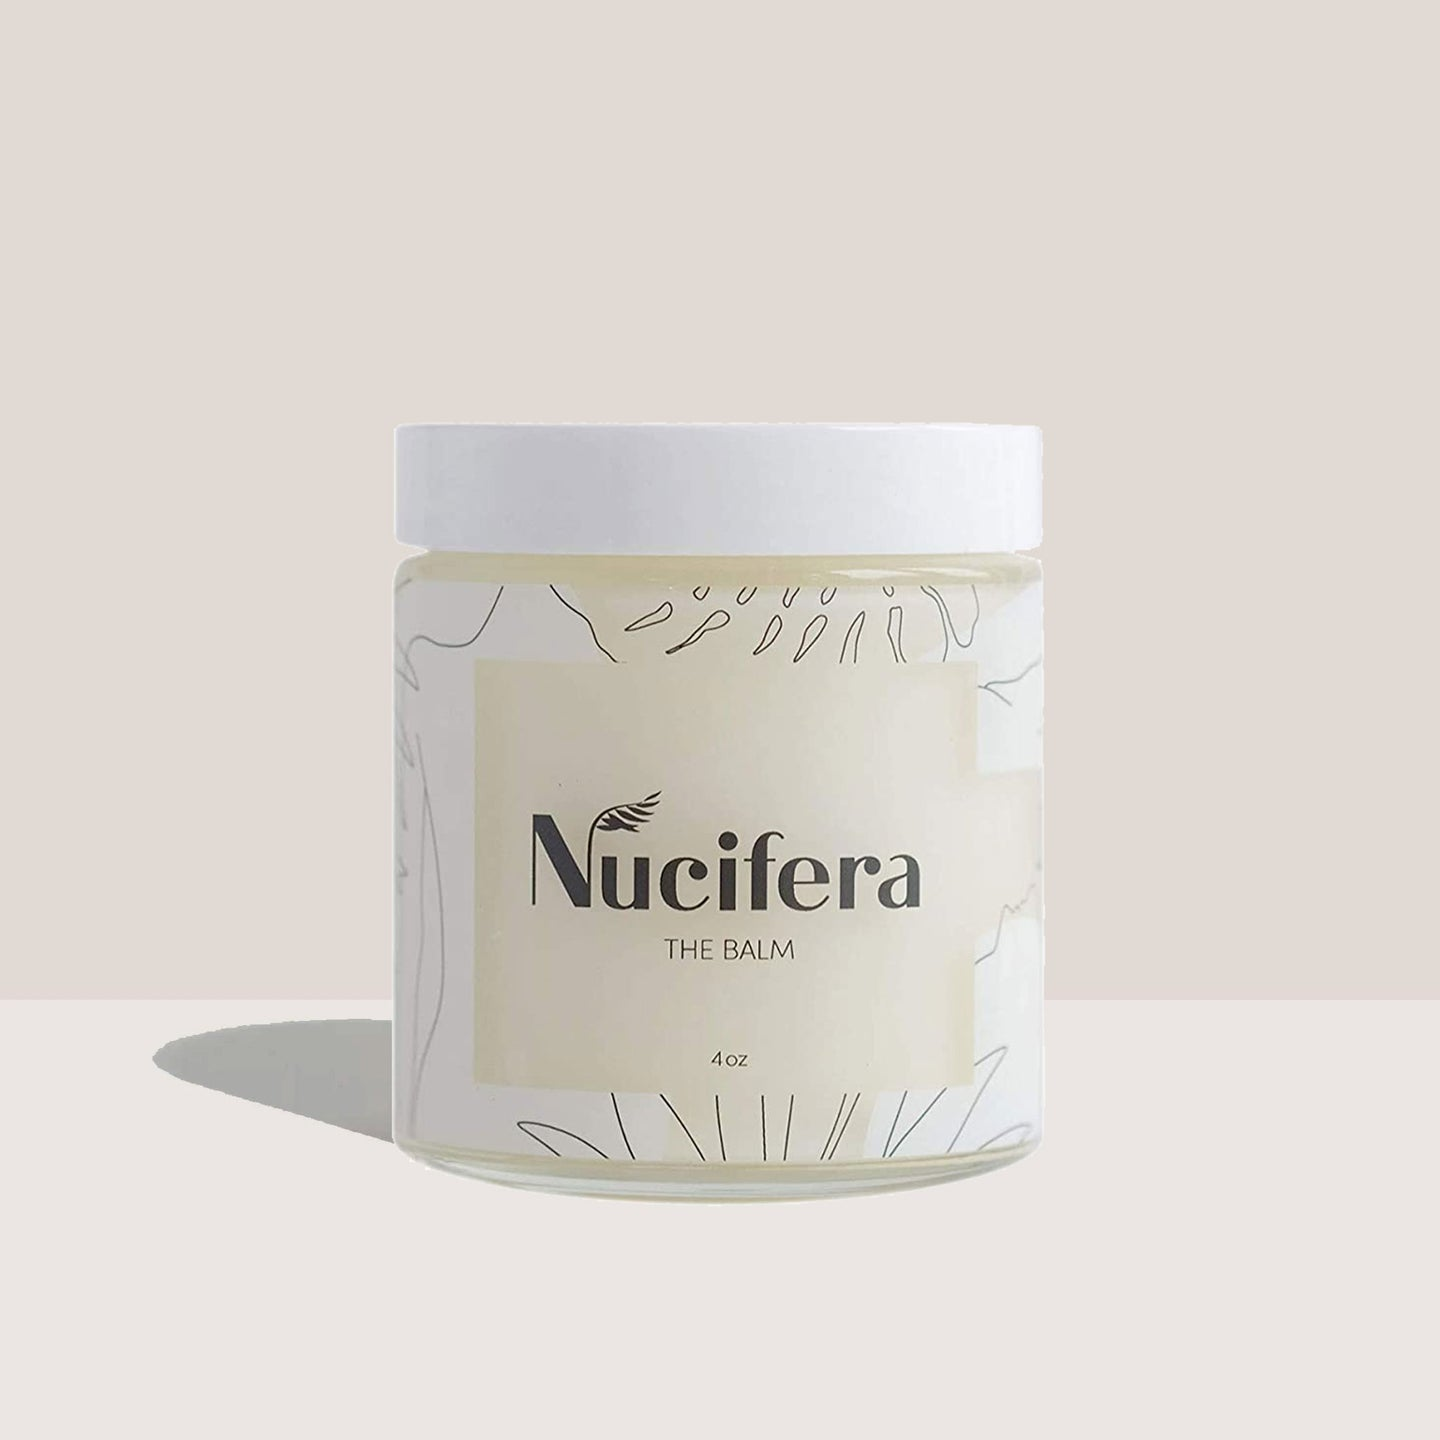 Nucifera - The Balm - 4oz, available at LCD.